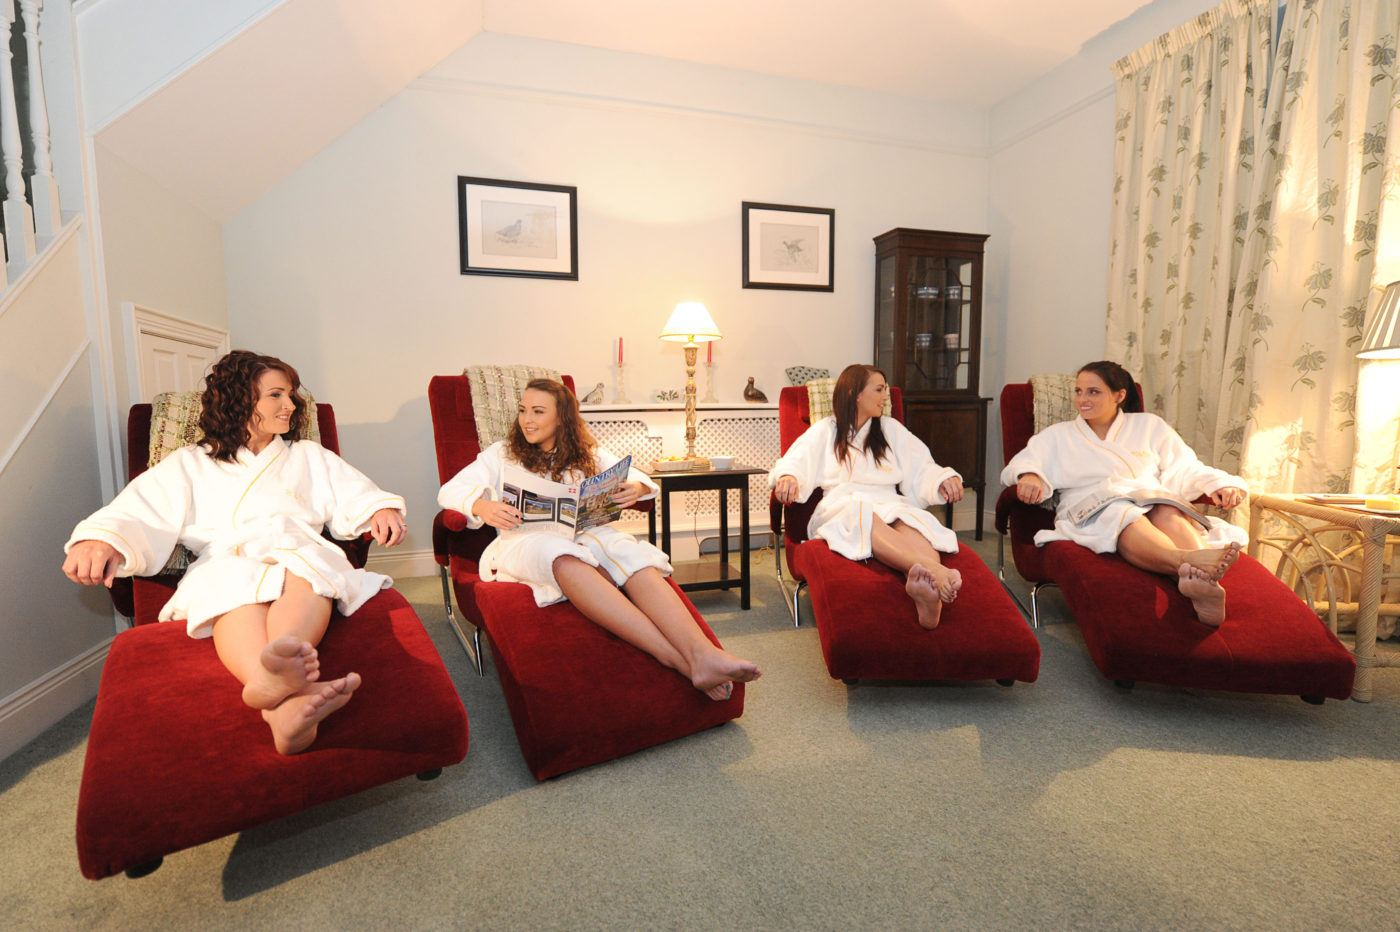 Spa escape hen party idea